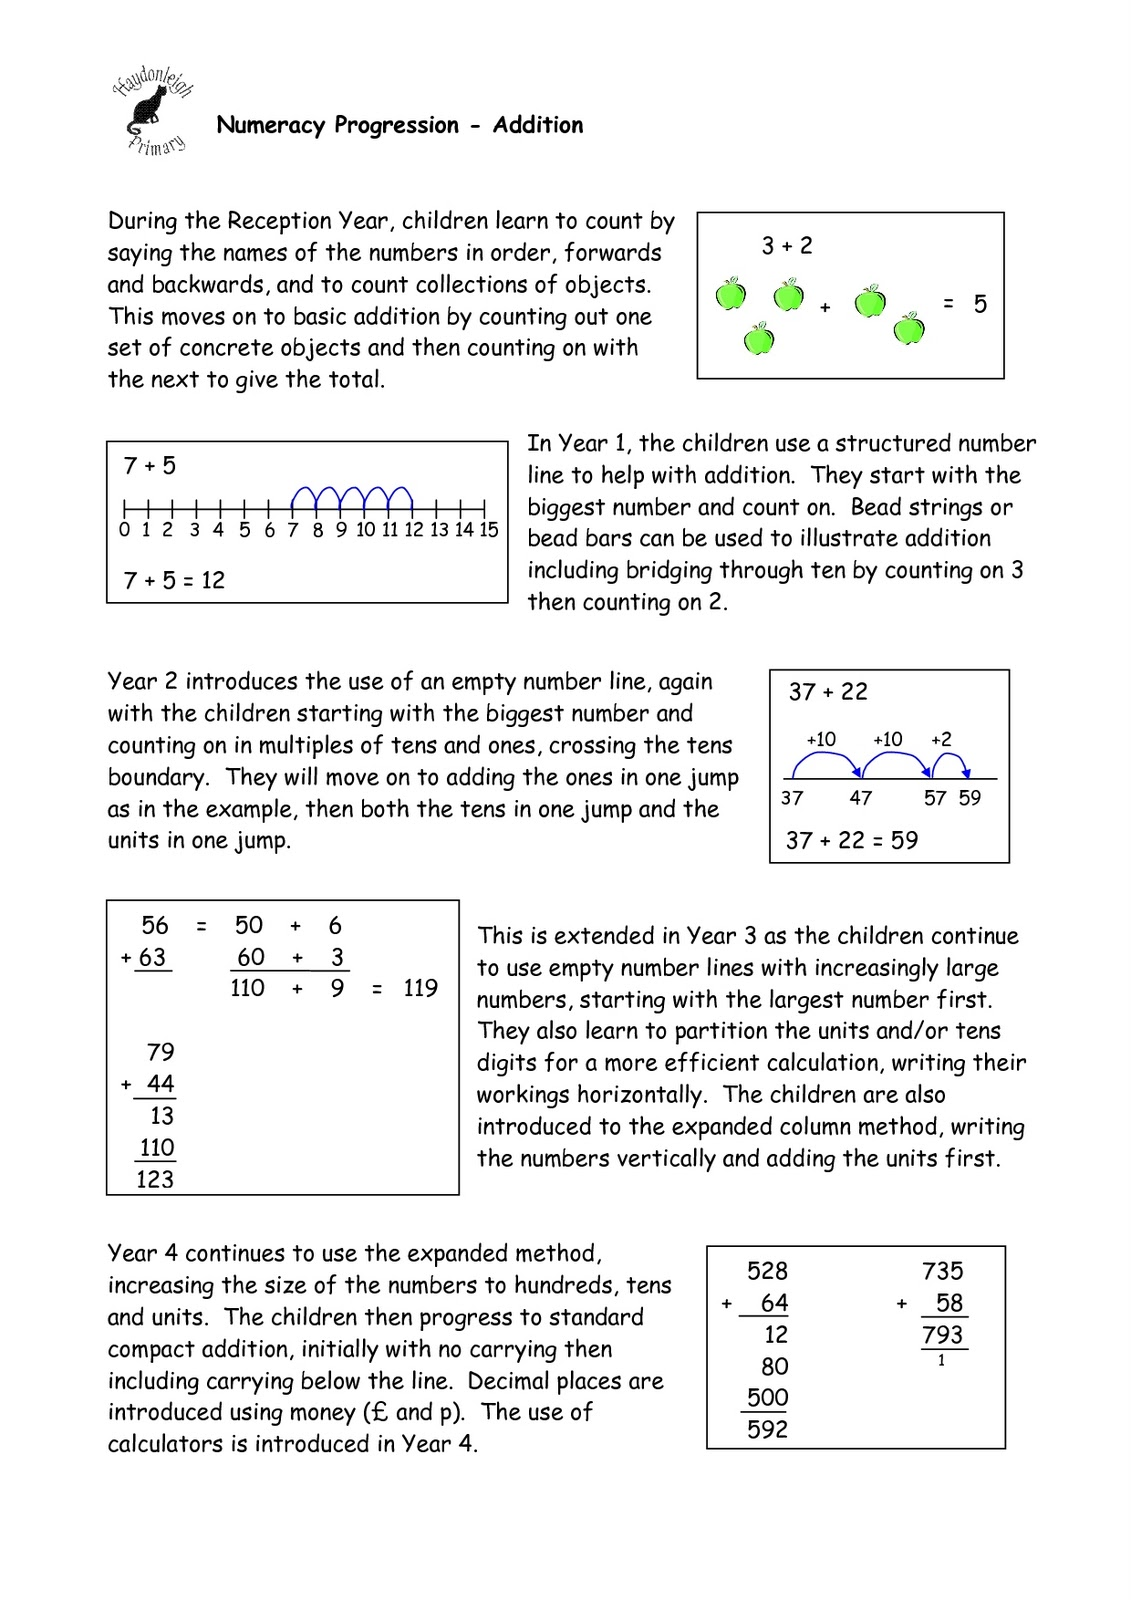 Numeracy: Numeracy link 3 = addition and subtraction